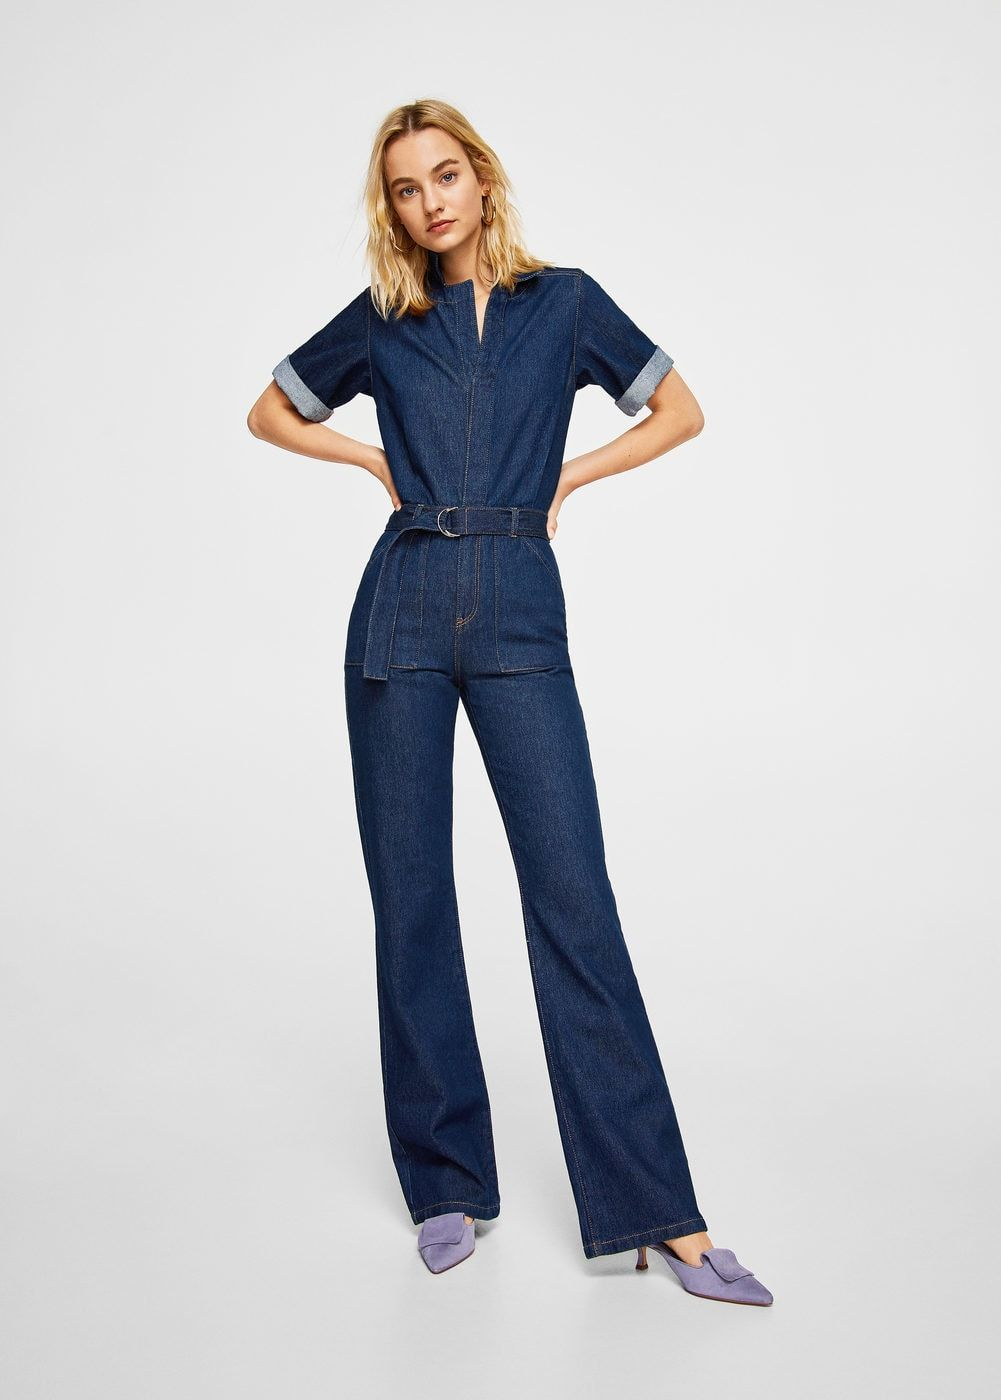 Belt En ノ 2019Fashionノ≧∀≦ Denim Jumpsuit Women cF1JluTK3